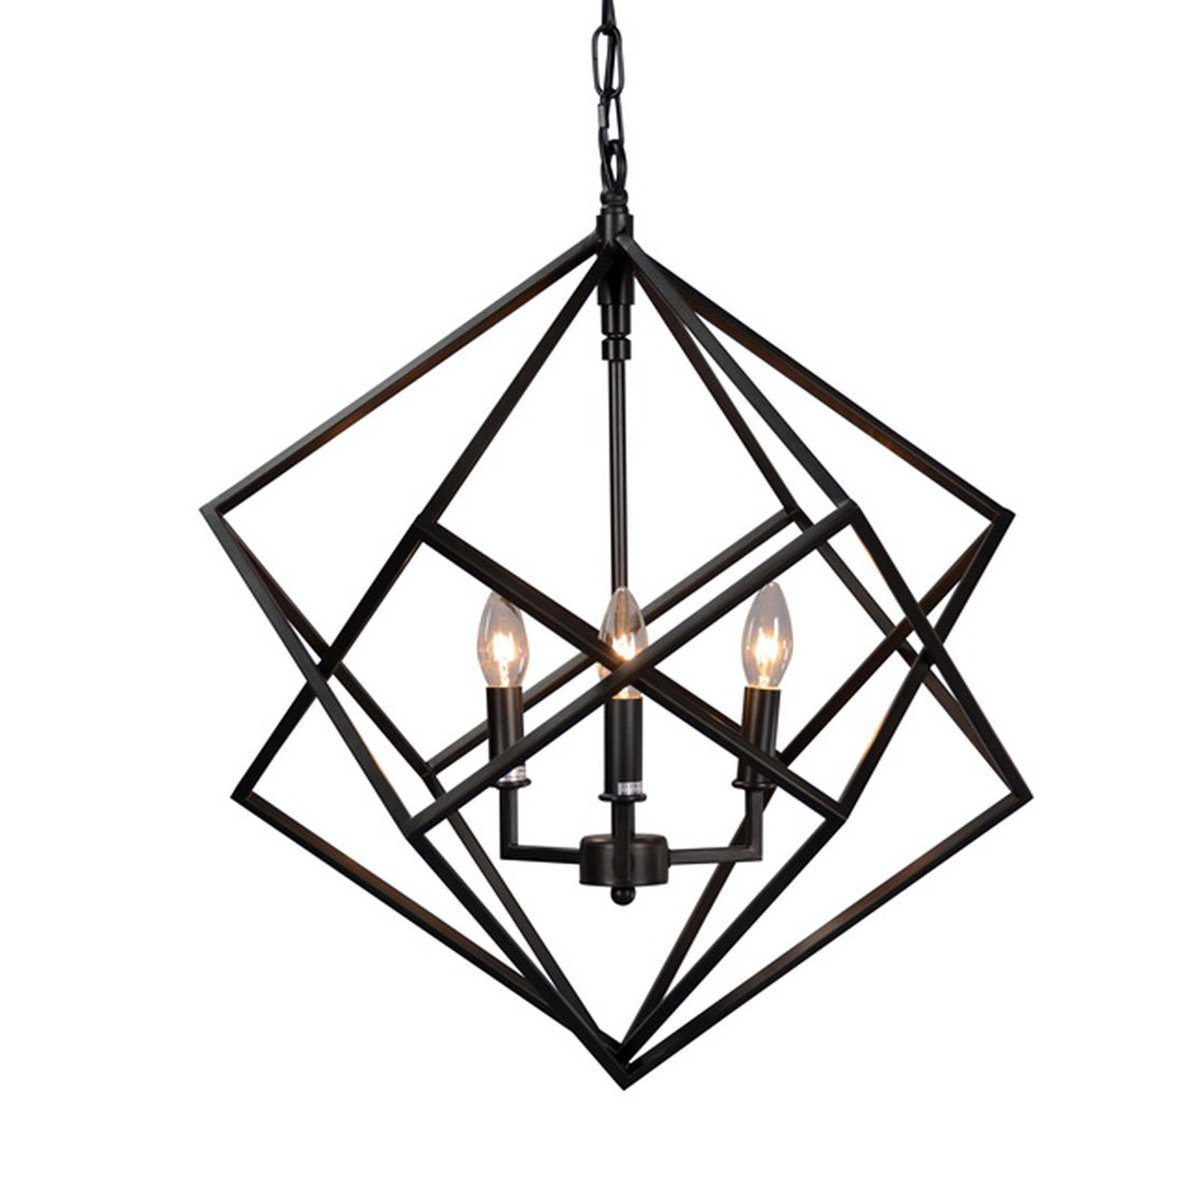 PENDANT CHANDELIER Lighting LH